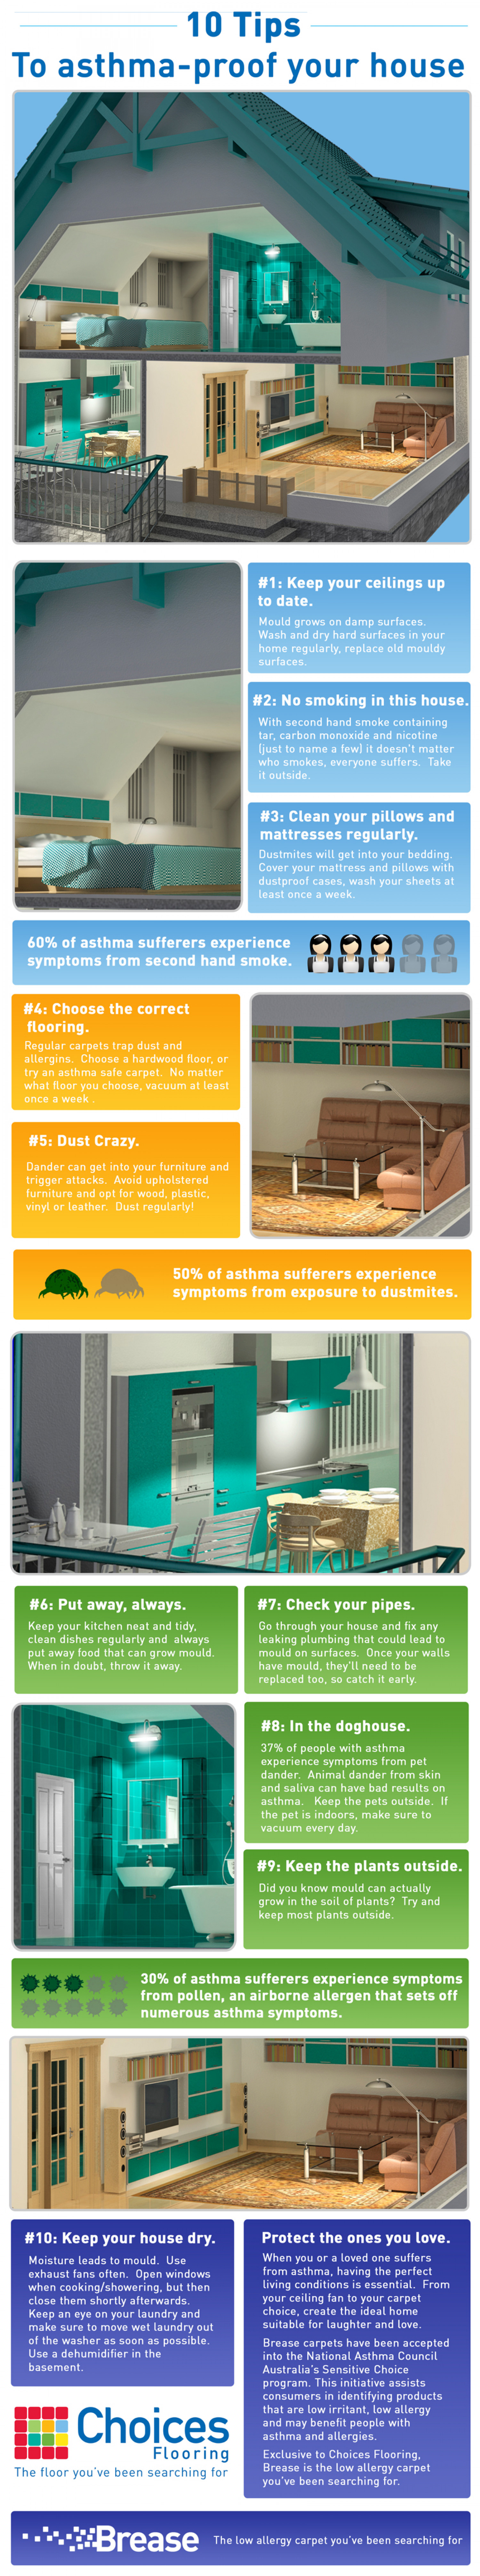 10 Tips to Asthma Proof your House Infographic